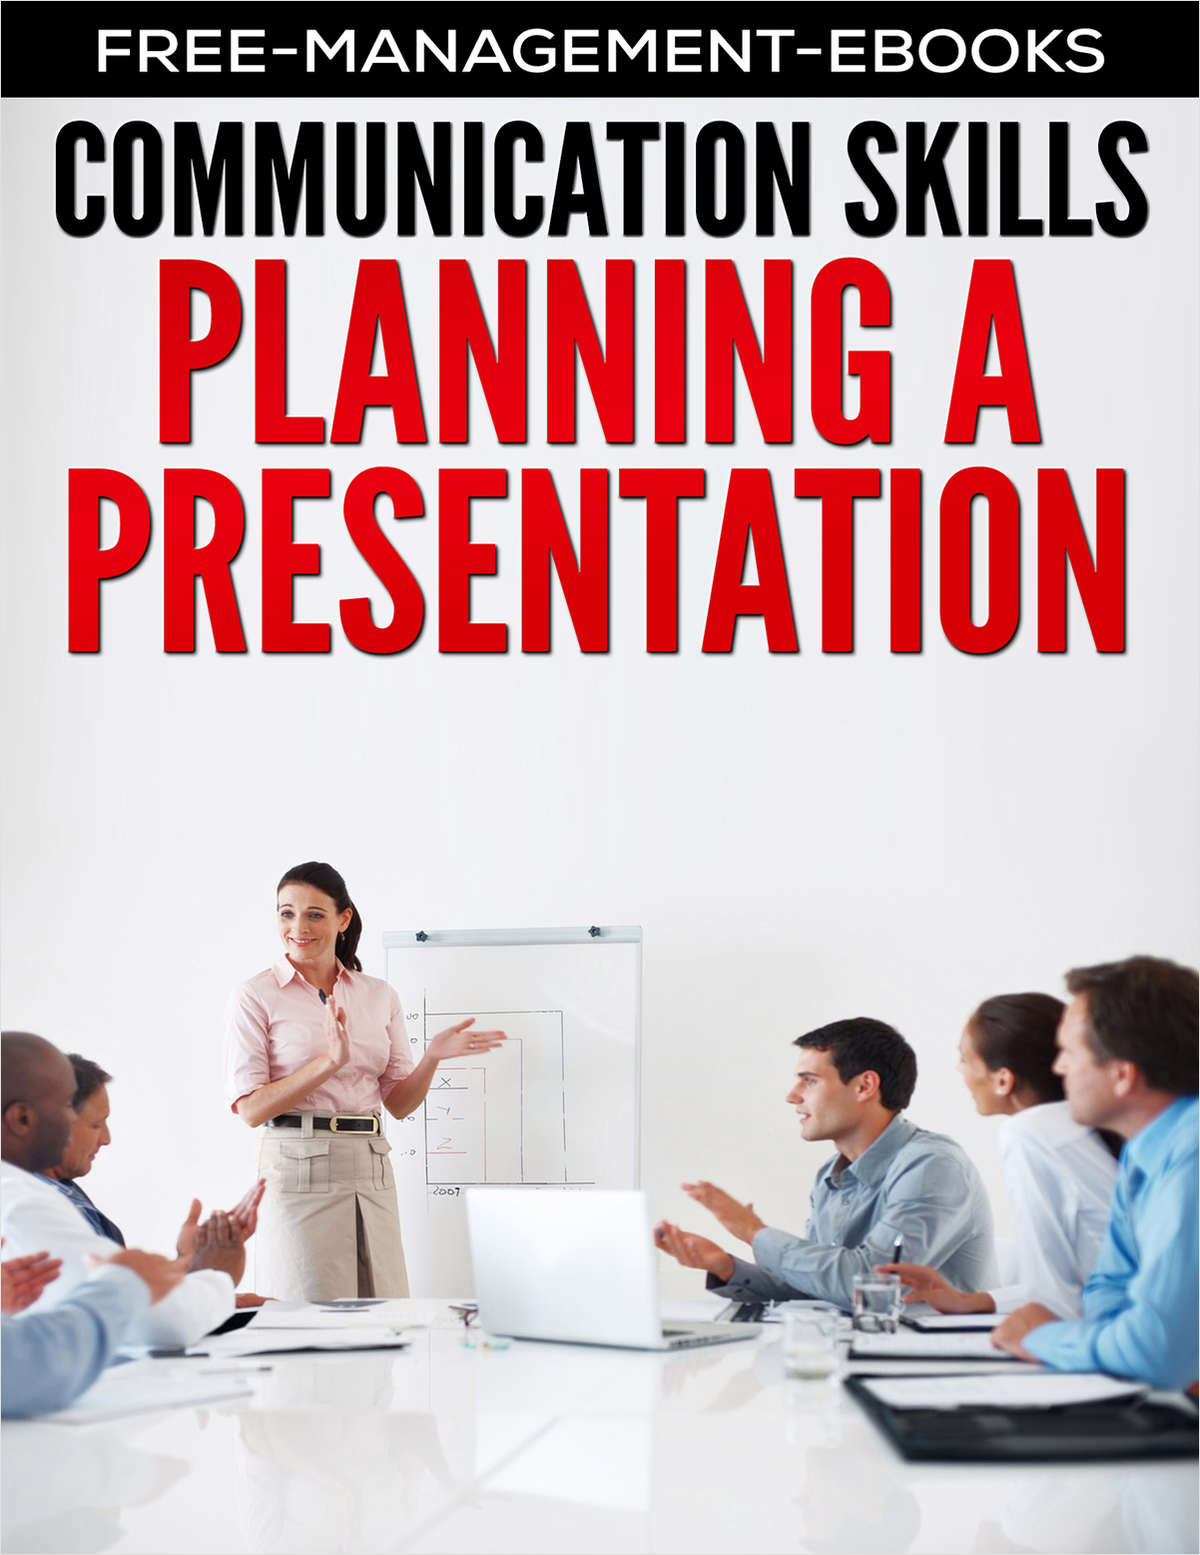 Planning a Presentation -- Developing Your Communication Skills